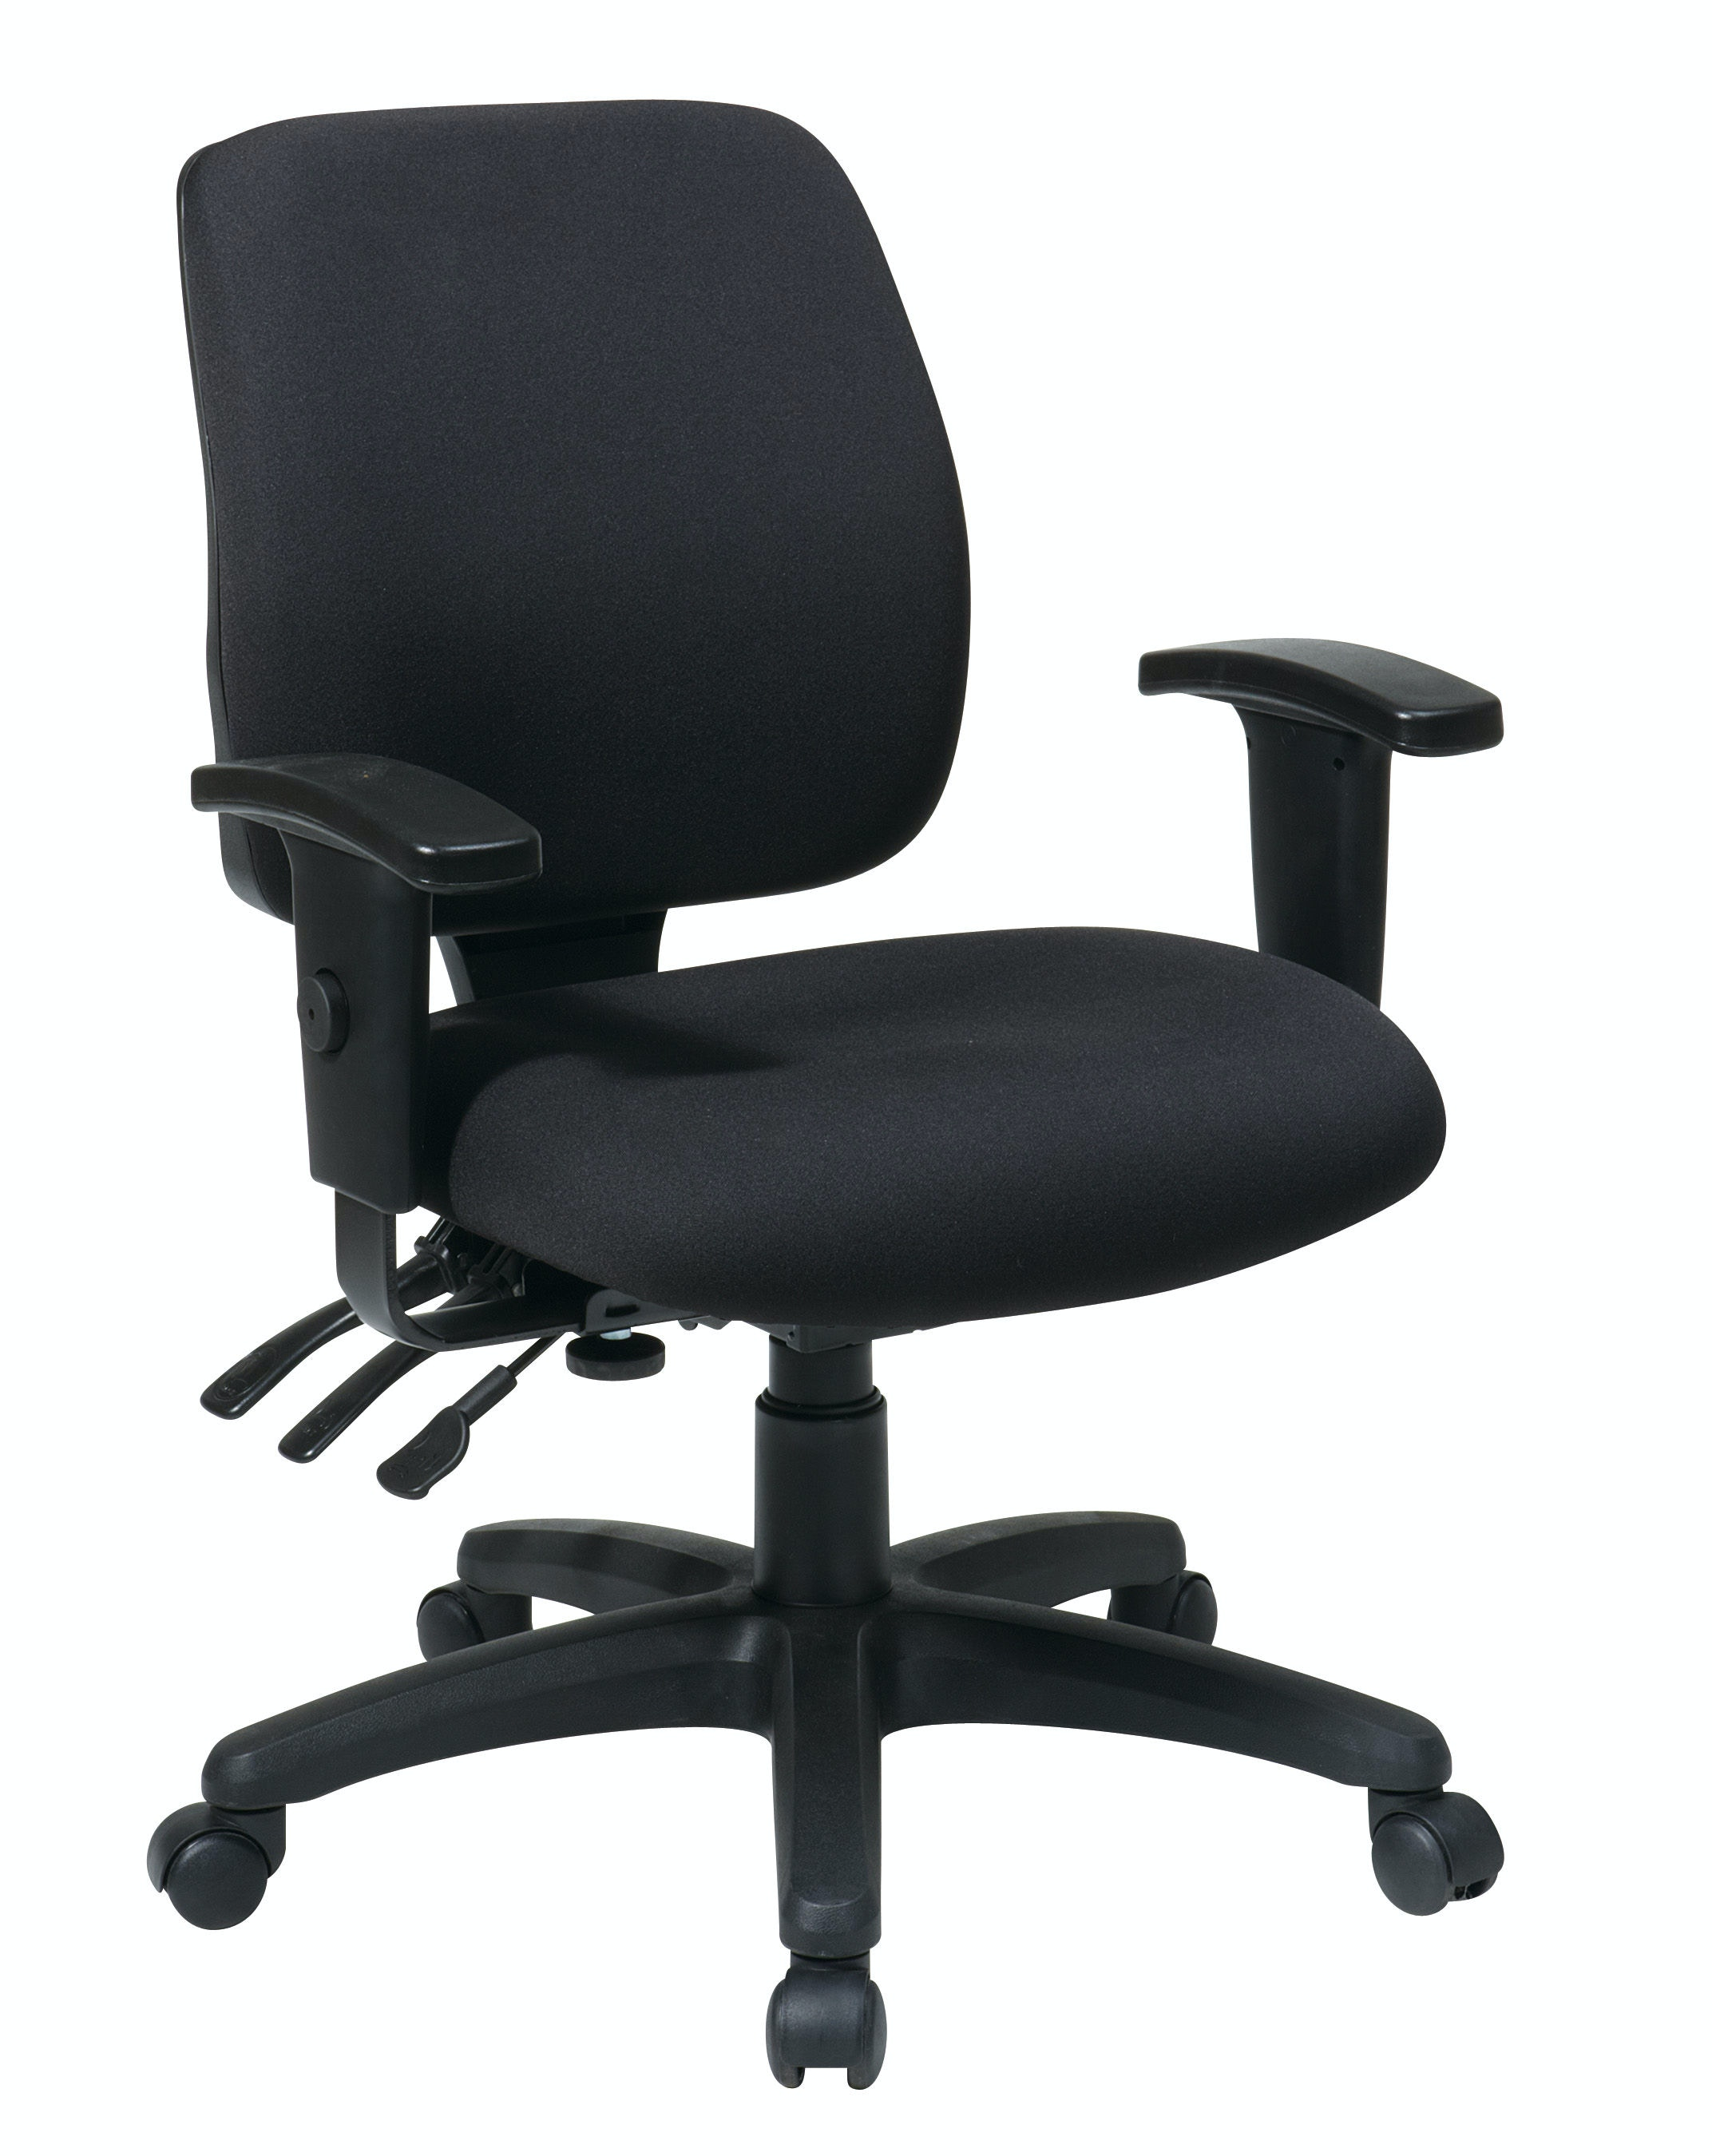 ergonomic chair home z line executive with contour seat and lumbar support office star products mid back dual function